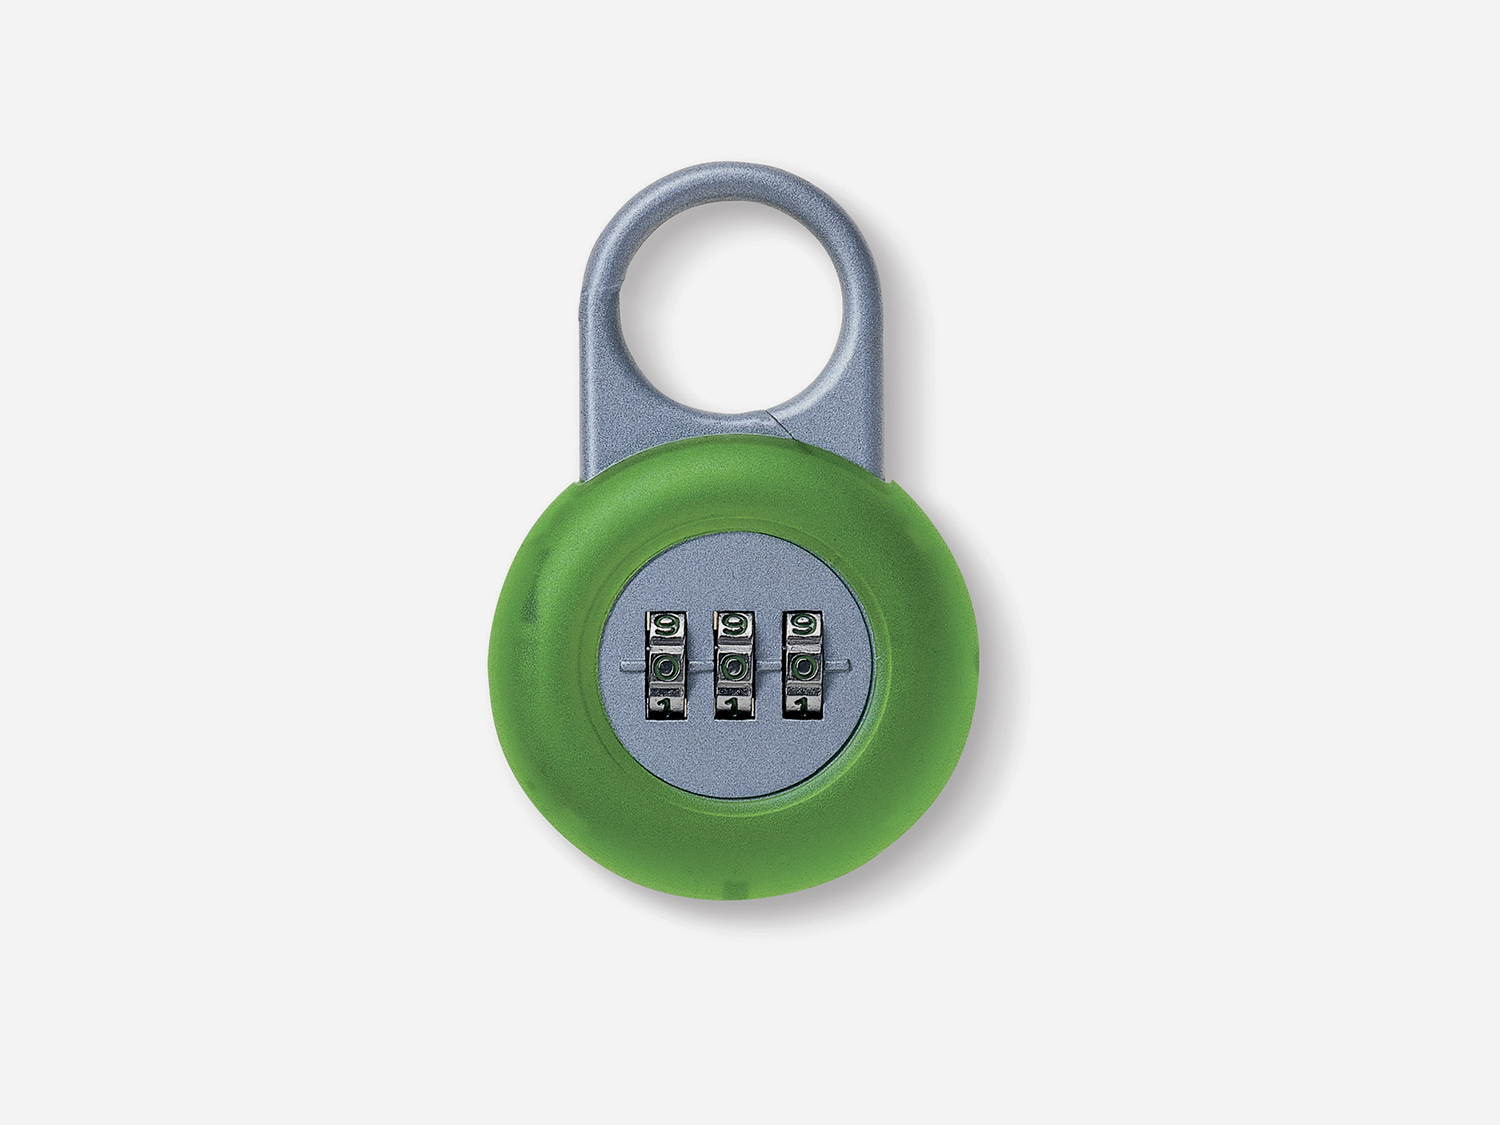 Handy Lock. Lock with metal case and silicon rubber surround. Designed for Lexon Paris in 2001.